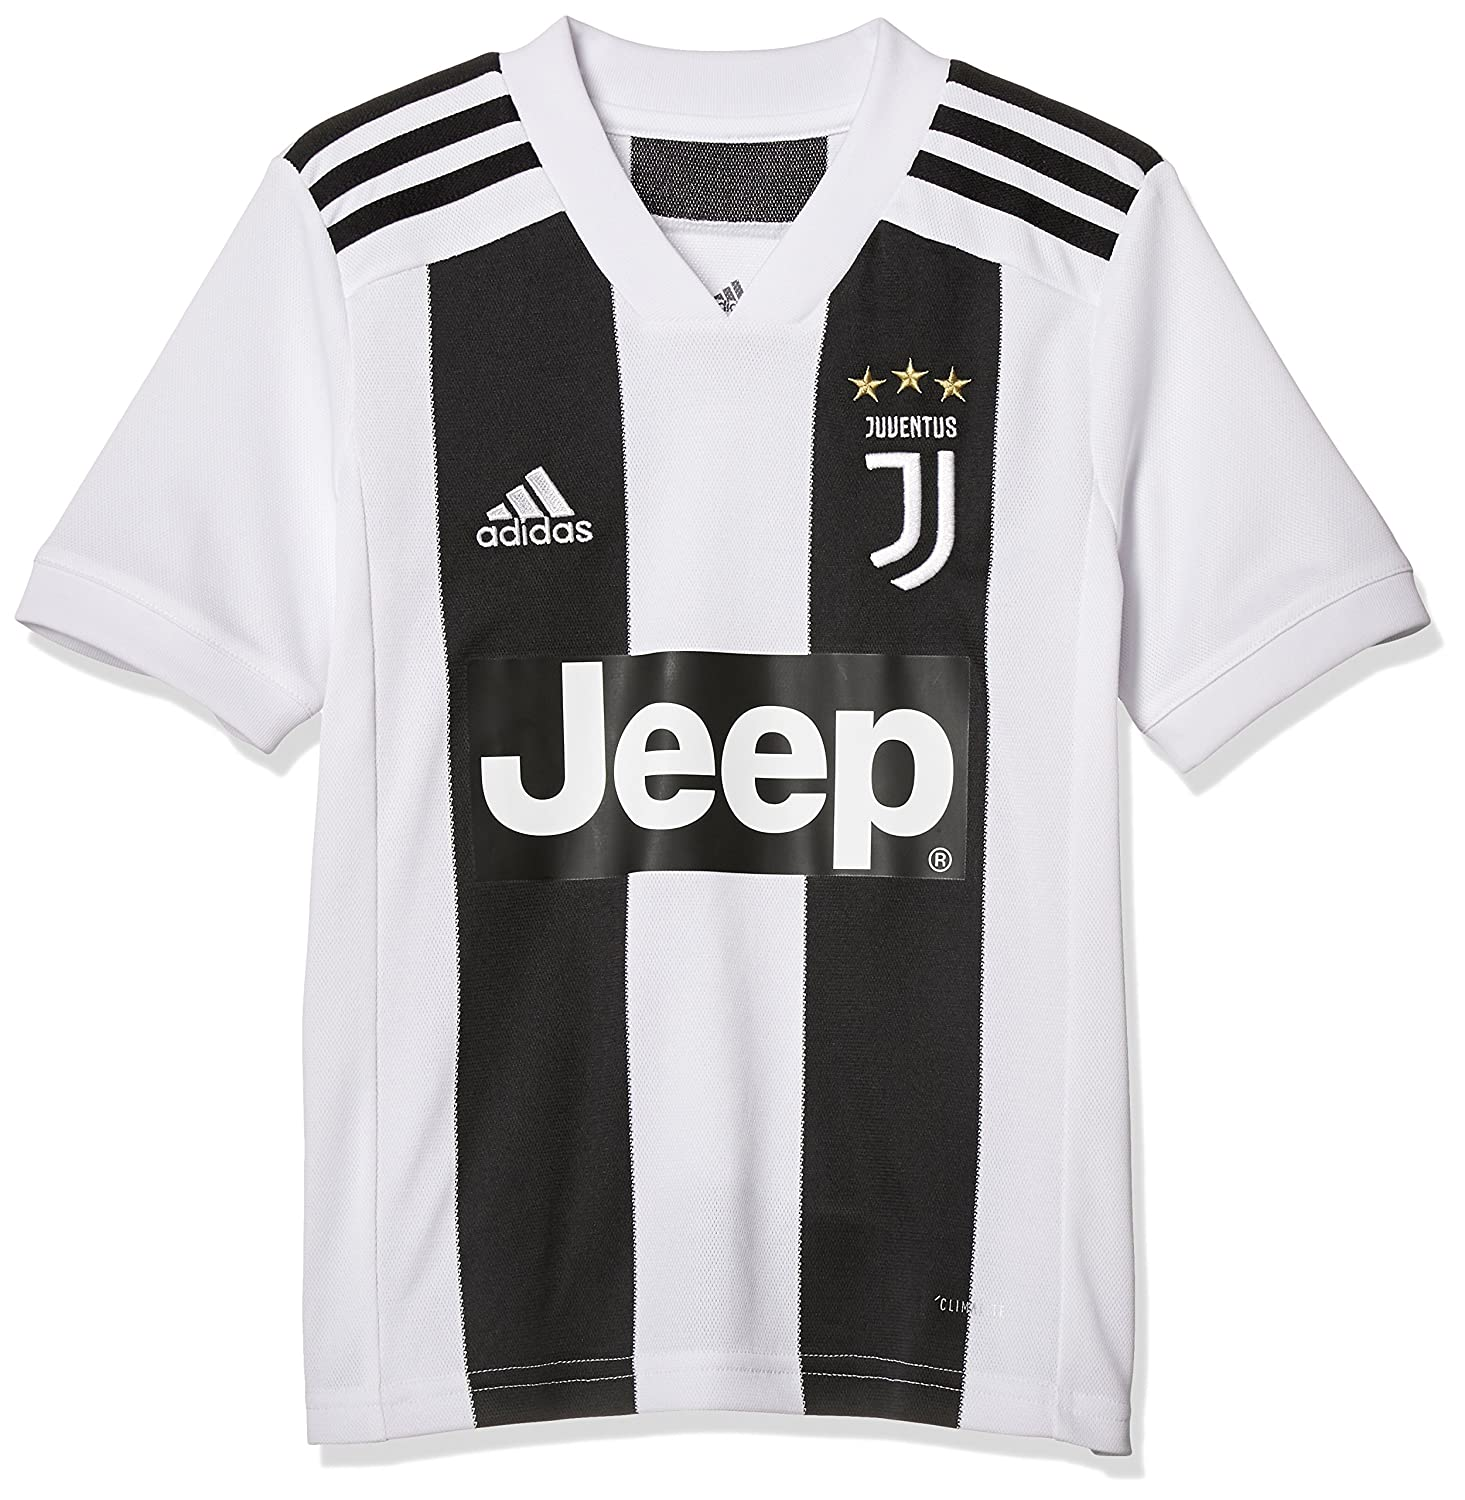 adidas Kid s Juventus Home Jersey  Amazon.co.uk  Sports   Outdoors e9b48b777